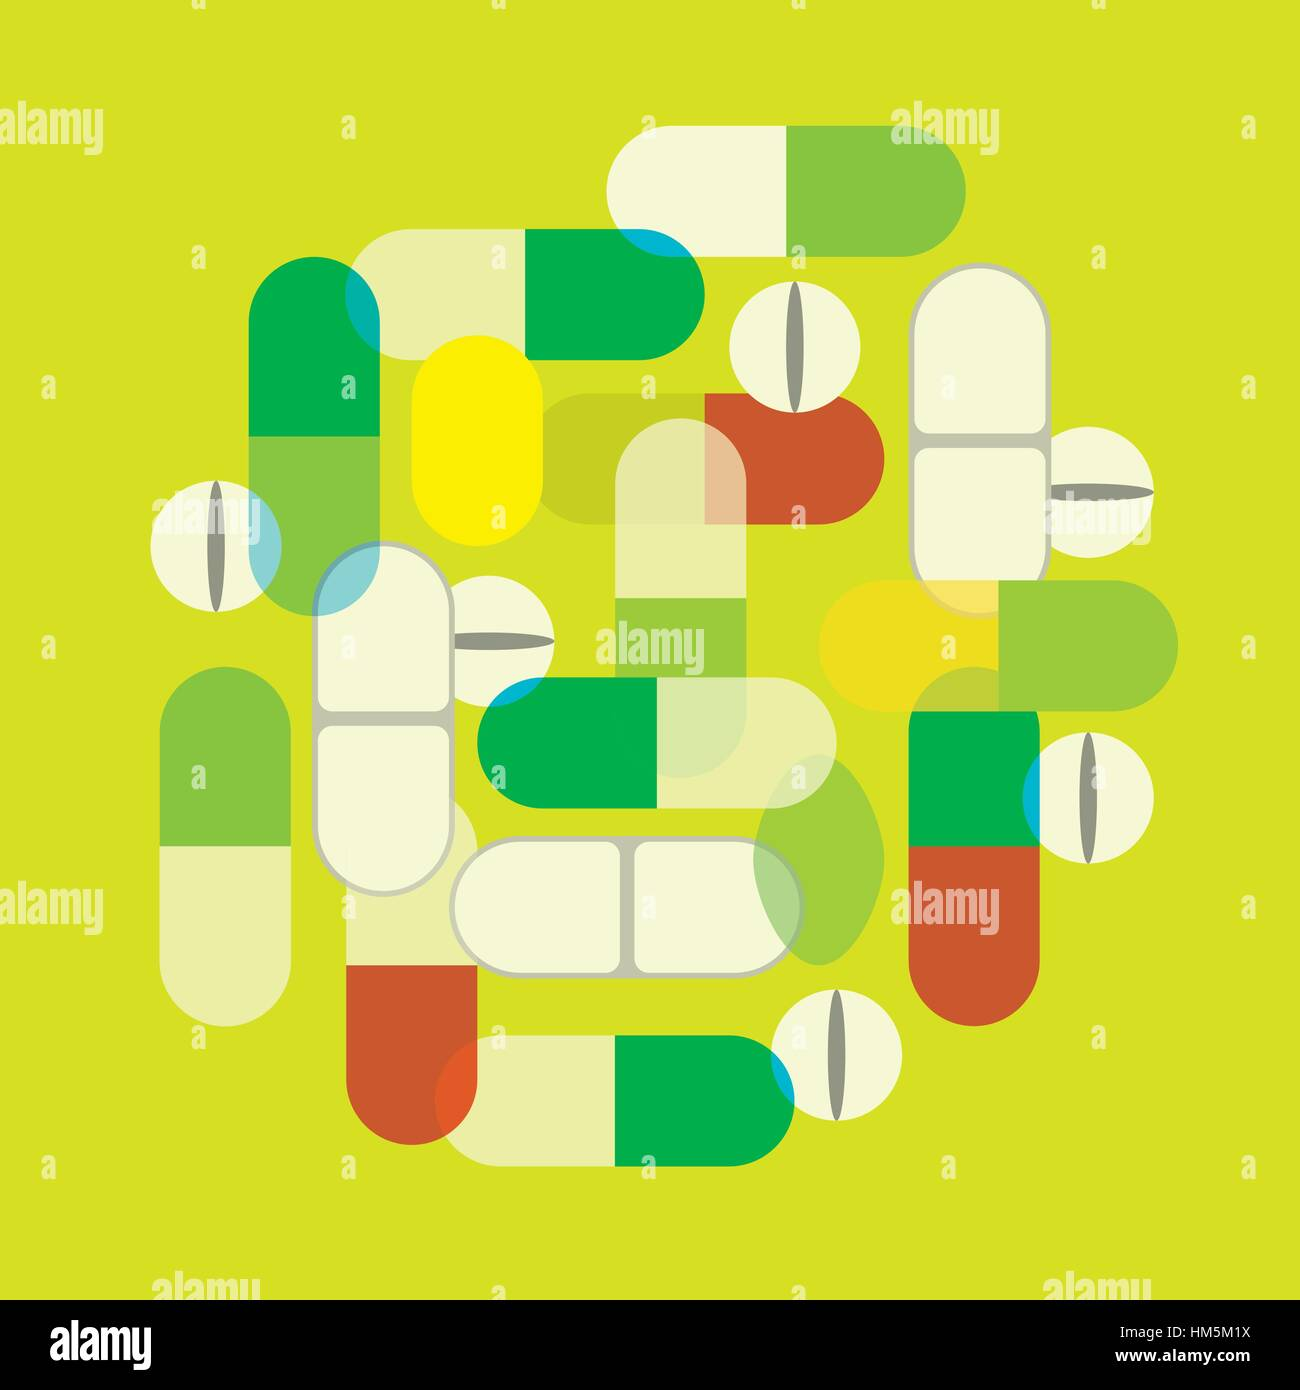 A graphic illustration image of different tablets, capsules and caplets. - Stock Image